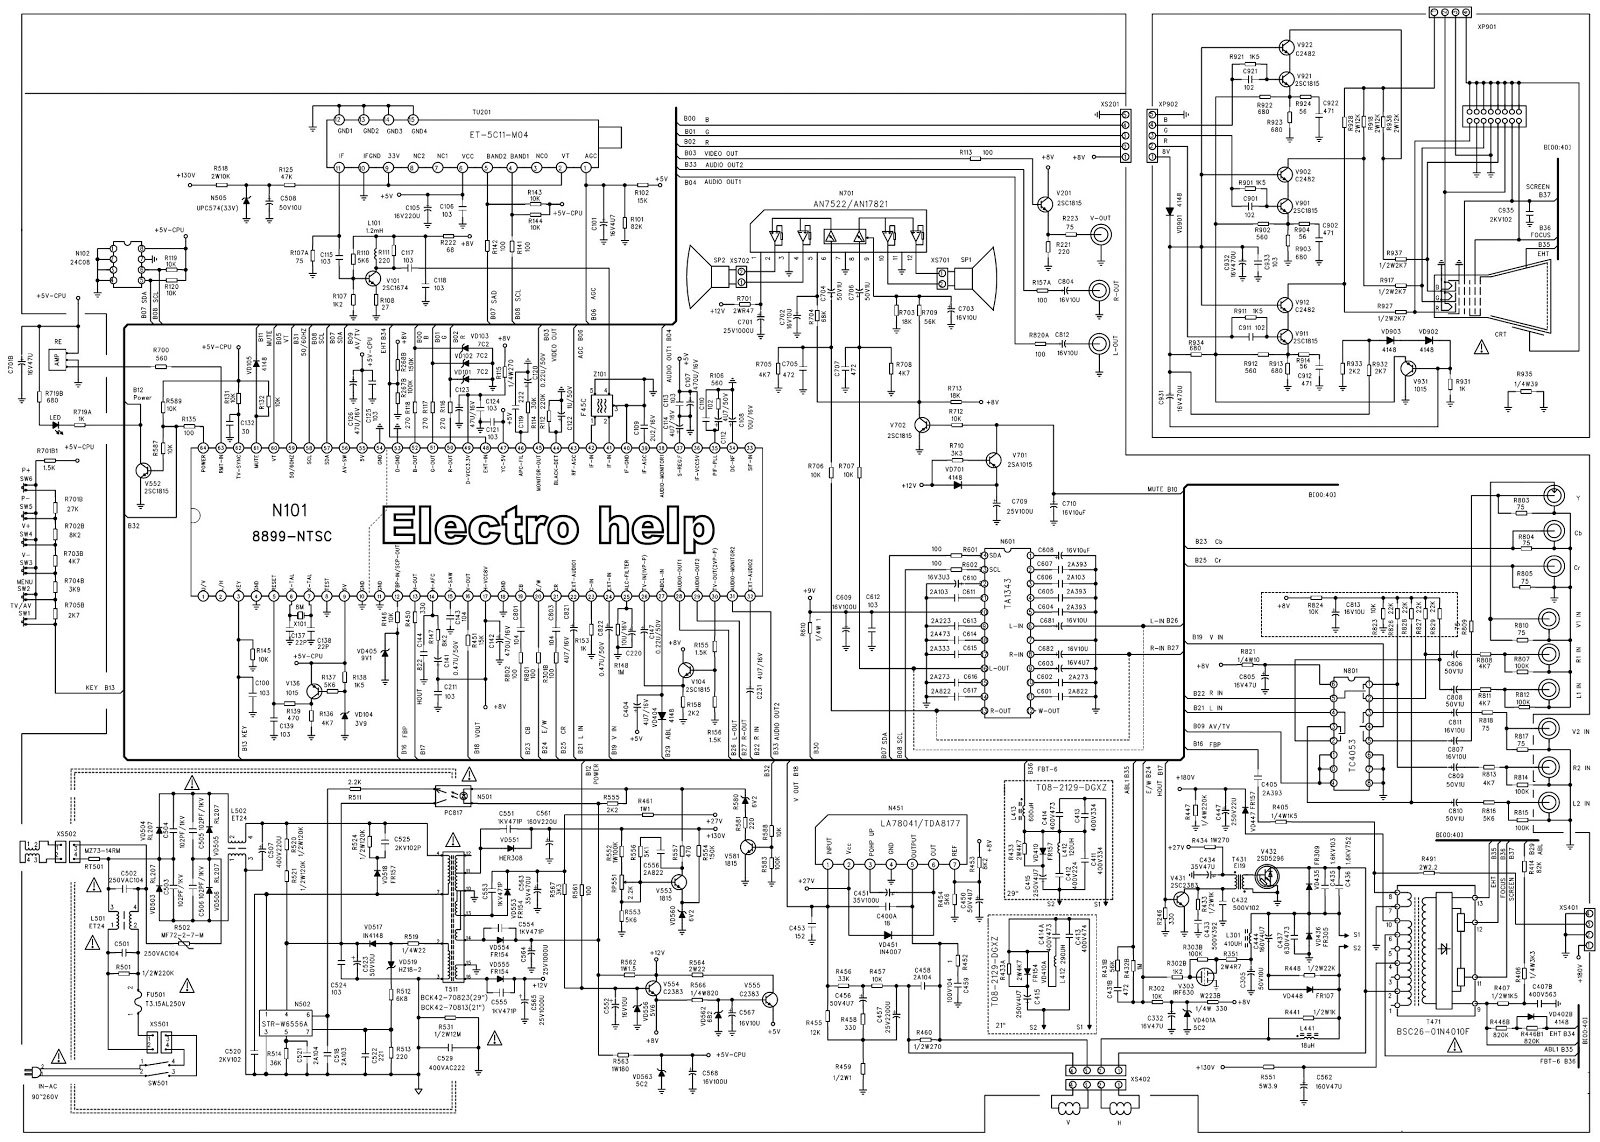 schematic diagram tv toshiba 29 online schematic diagram u2022 rh holyoak co Asus Laptop Parts Diagram Dell Laptop Parts Diagram